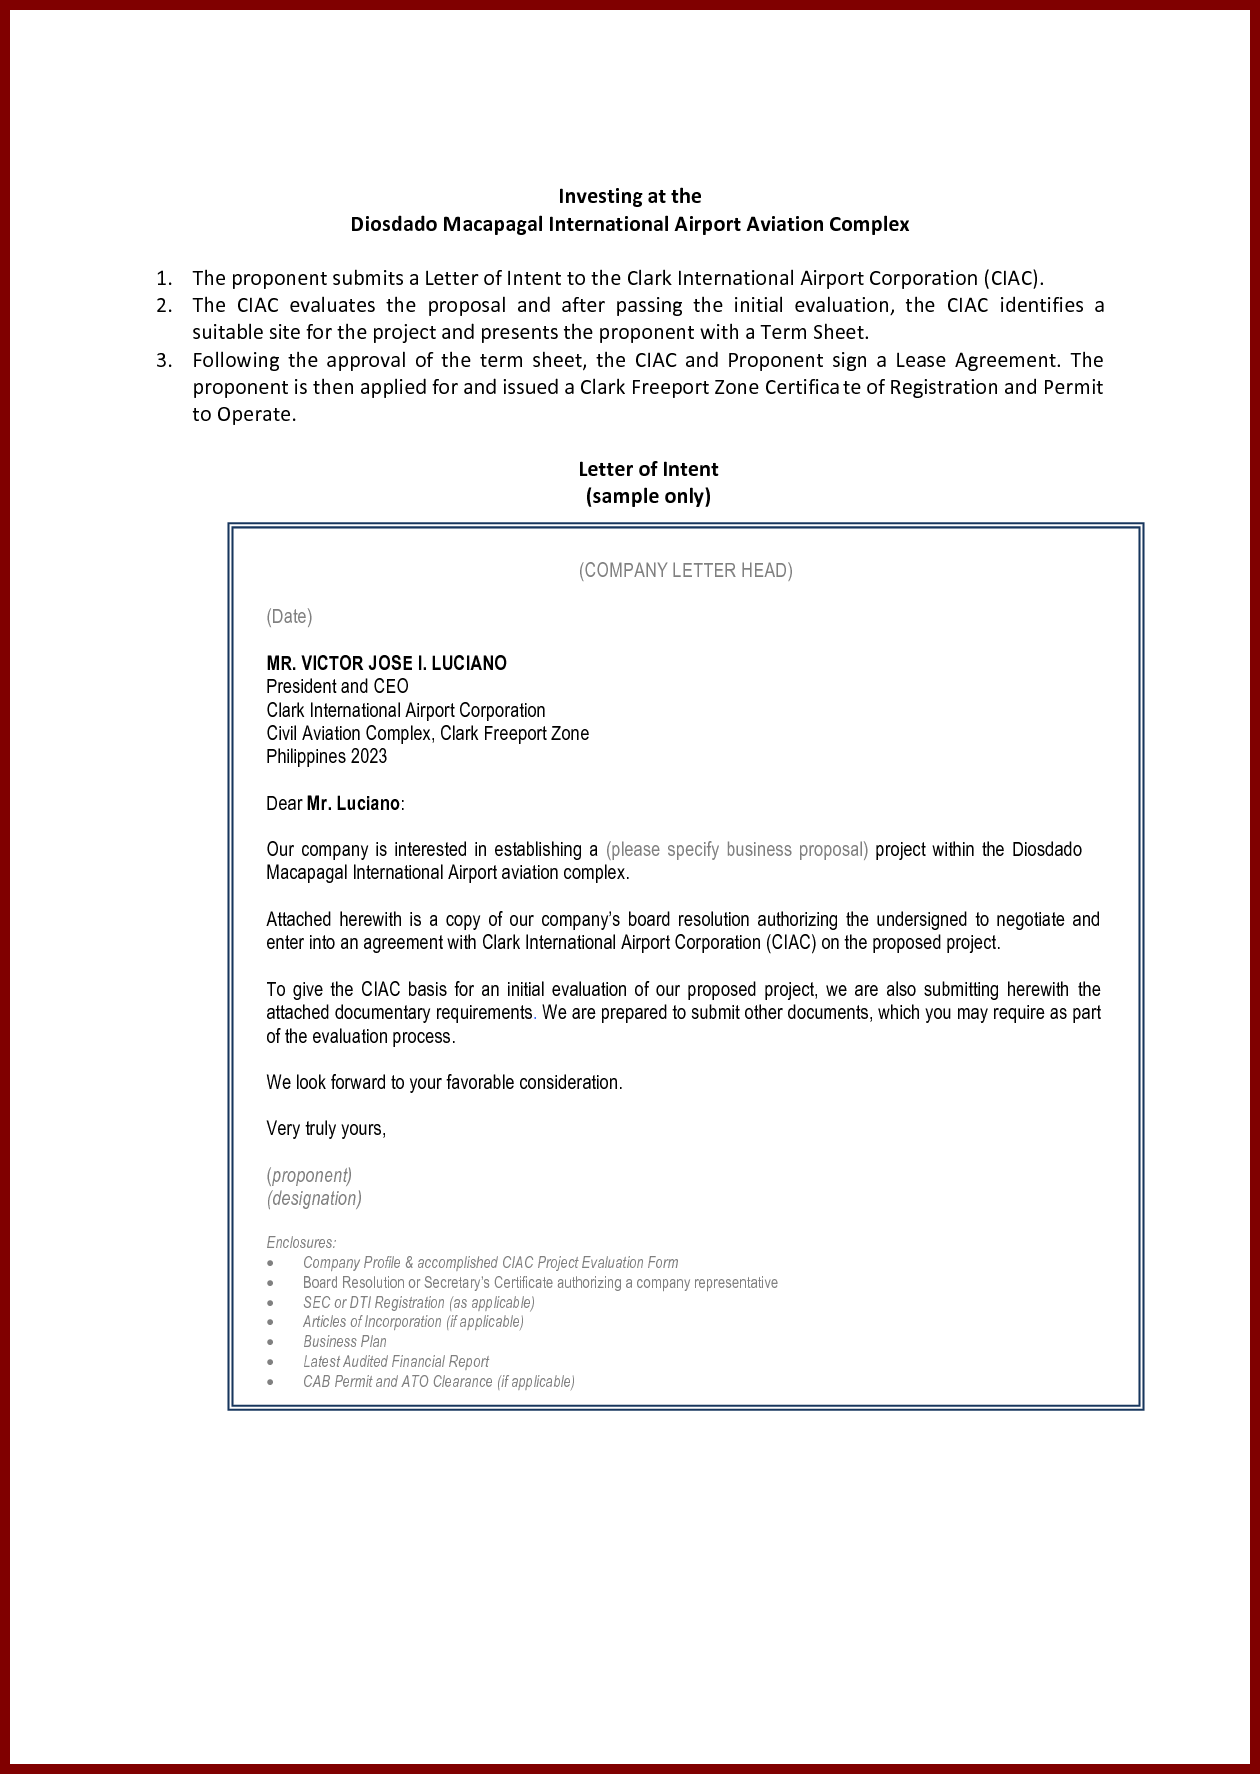 Canteen Proposal Letter Sample Sendlettersfo Business For Cake Store Mhz  A Business Proposal Letter